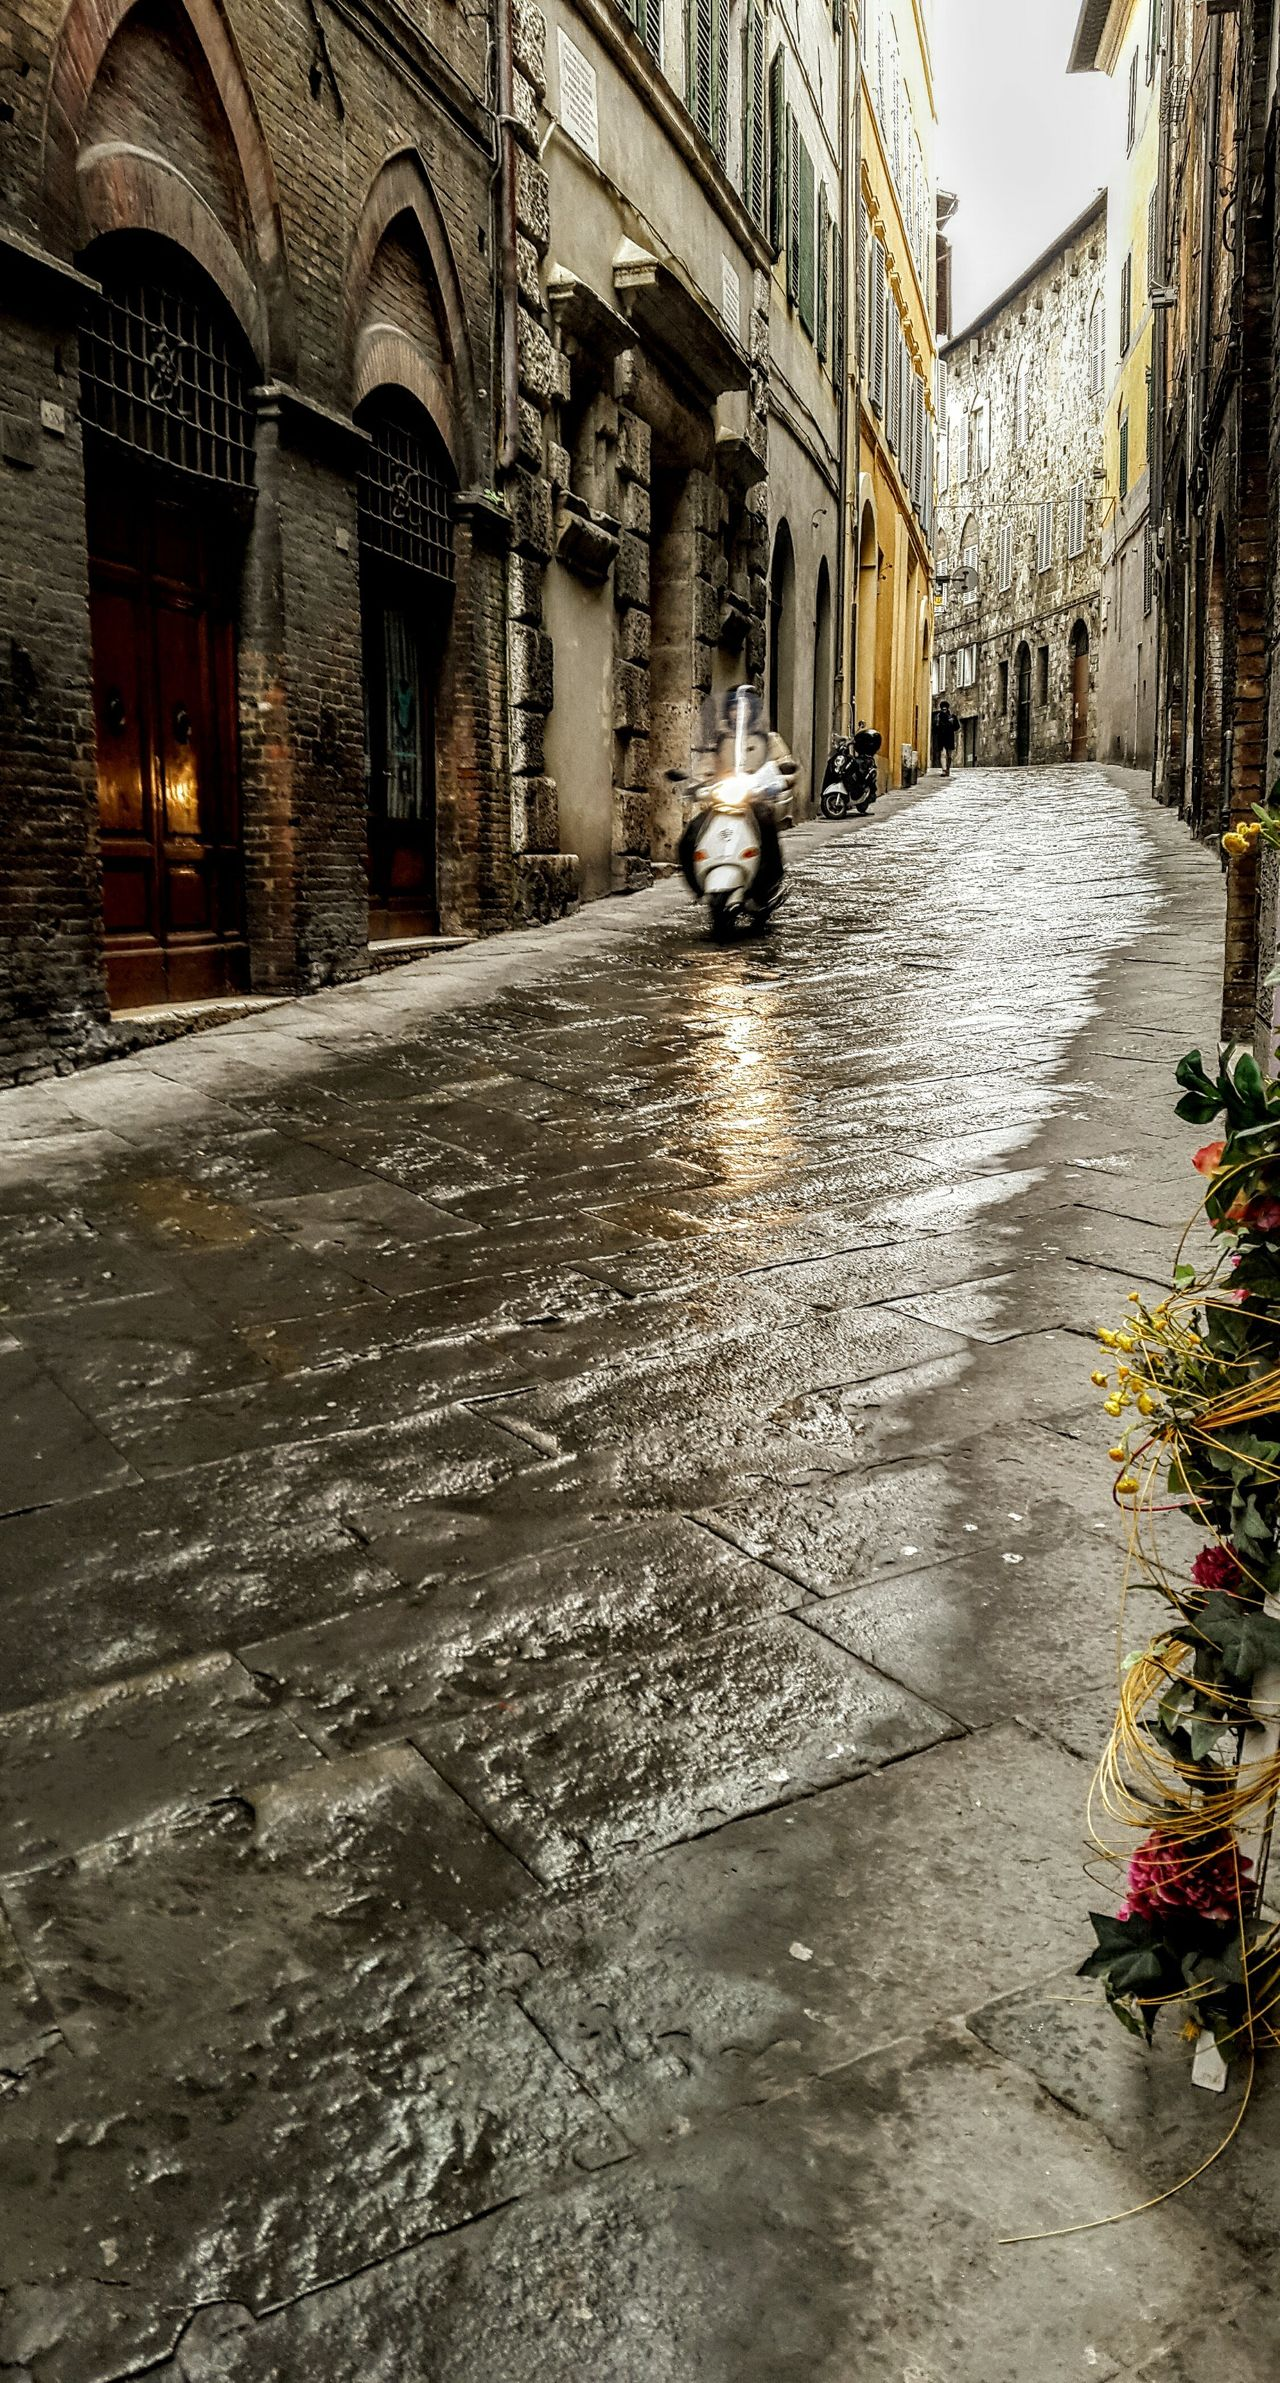 City Medieval City History Travel Destinations Outdoors Residential Building Building Exterior Architecture Transportation Calle Strret Moto Siena Italia